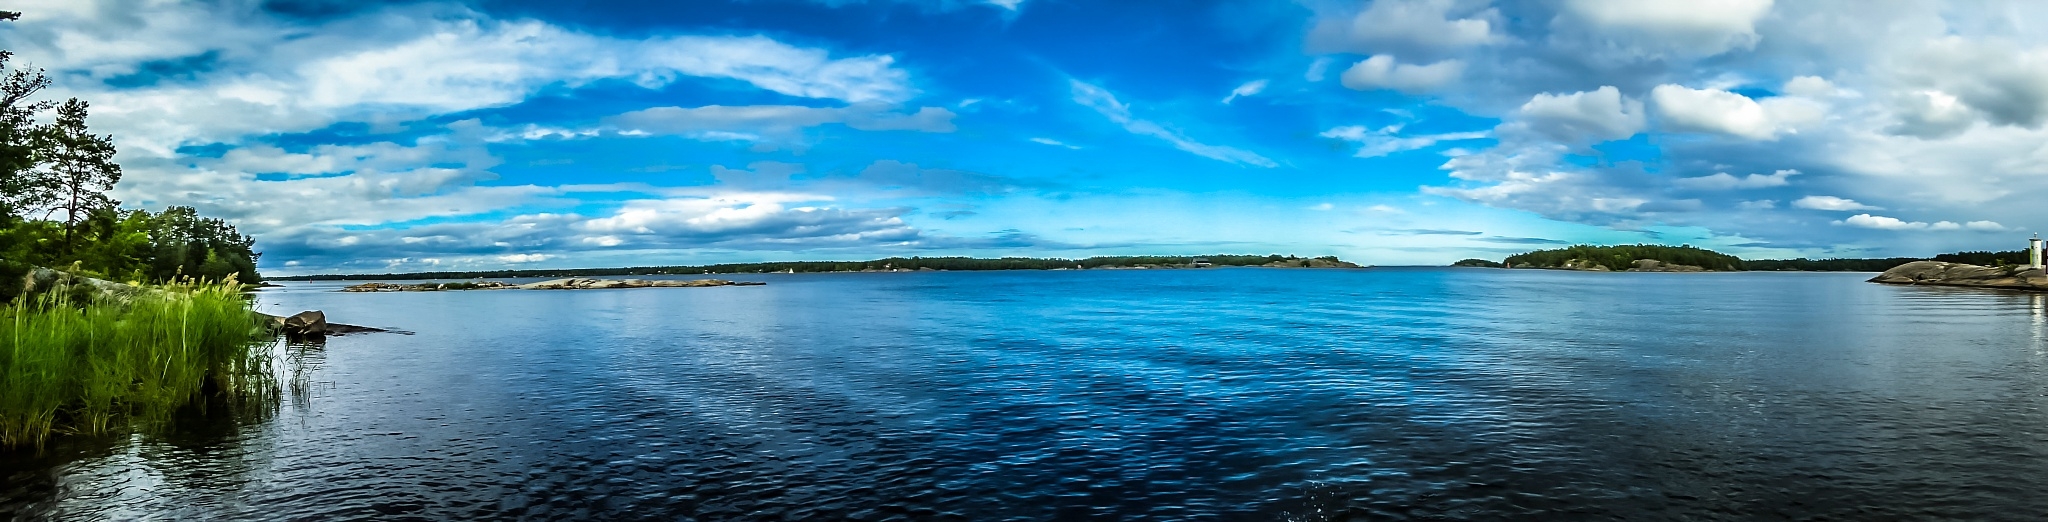 Panorama. Swedish East Coast. by marielle axelsson